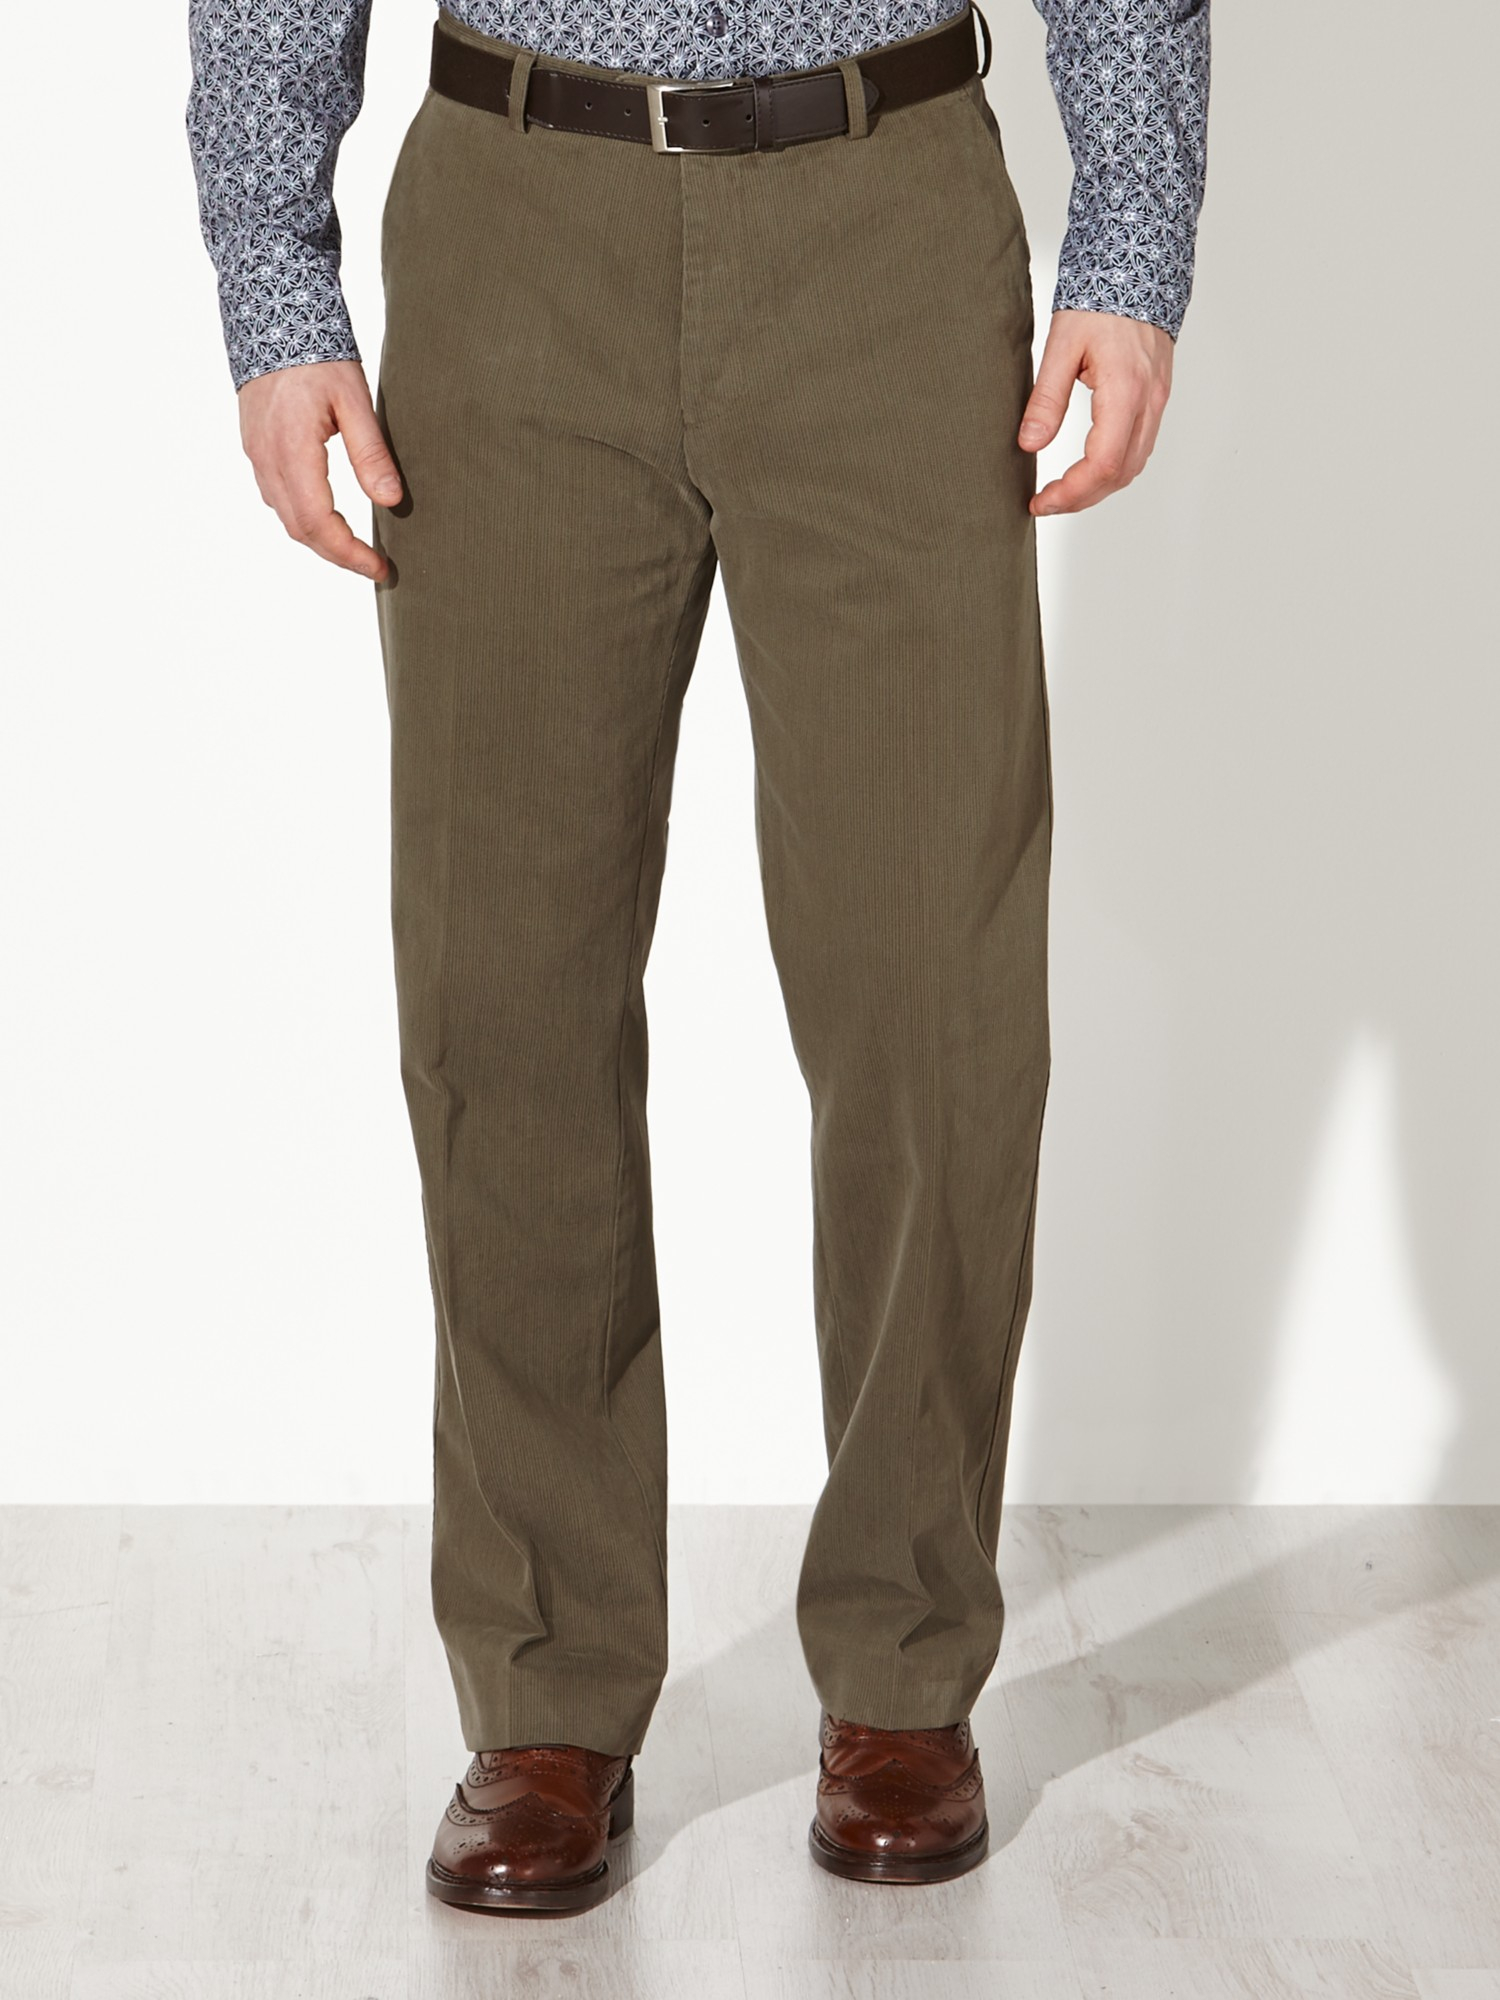 John Lewis Semi Formal Fine Stripe Stretch Trousers in Taupe (Brown) for Men